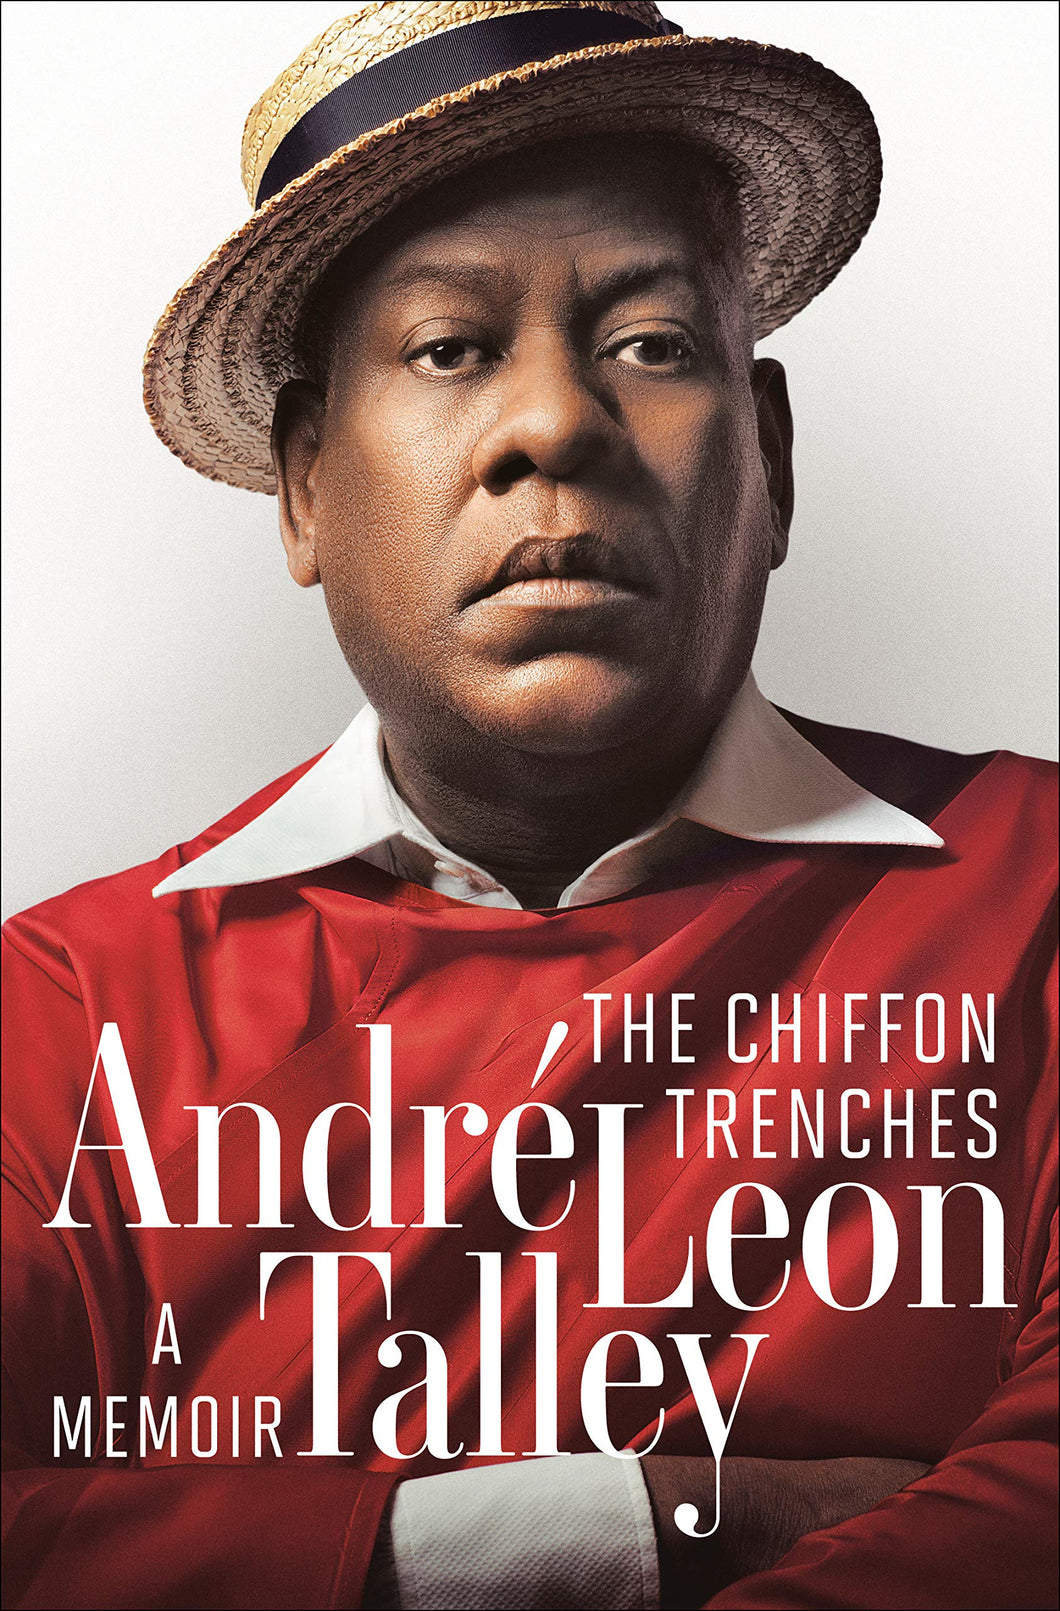 The Chiffon Trenches: A Memoir by André Leon Talley